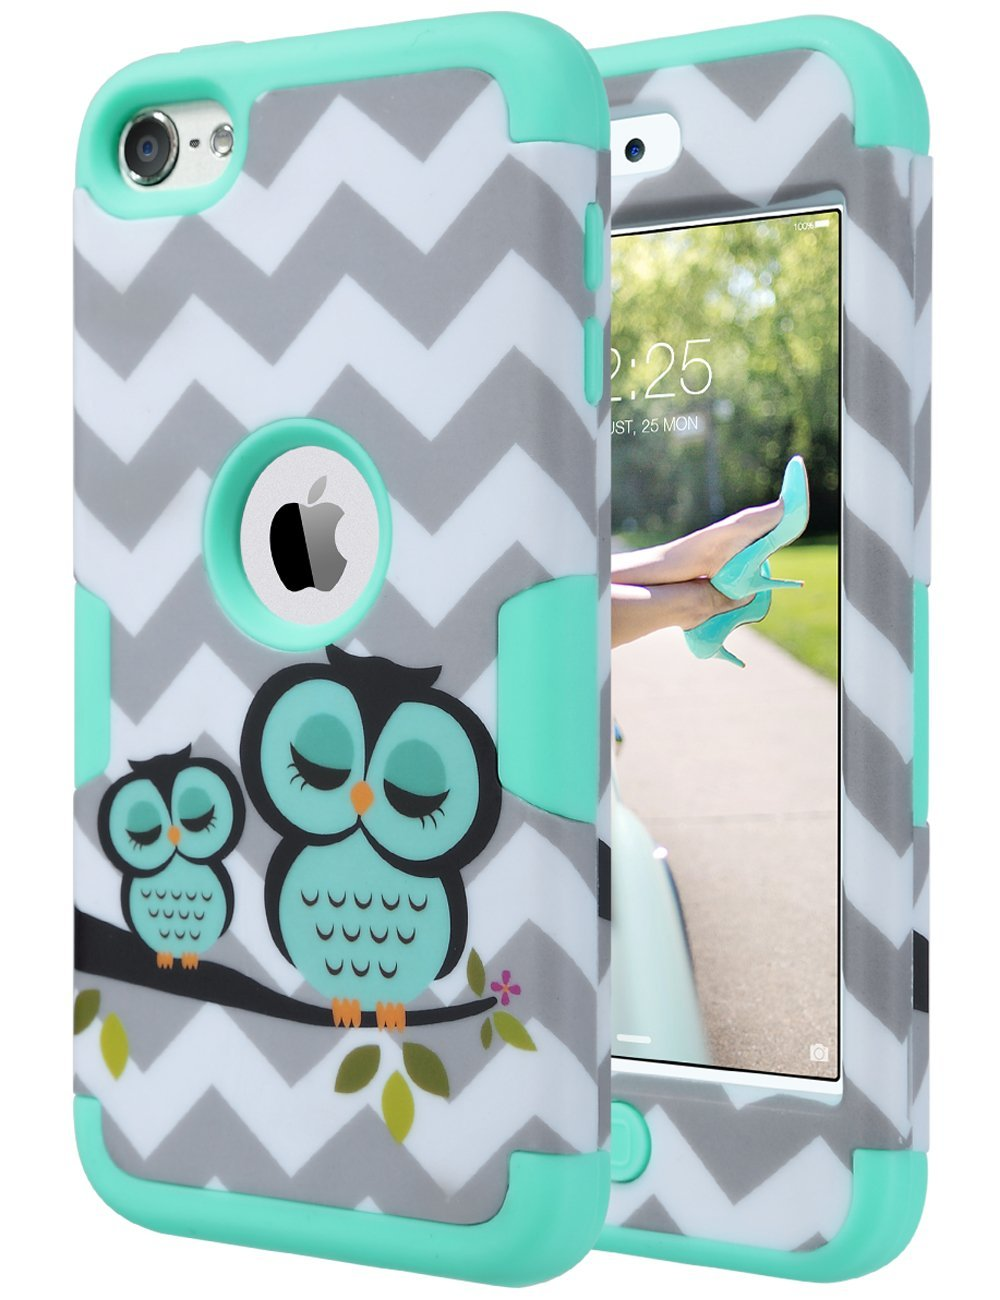 Buy iPod Touch 6th Generation Case for Girls,ULAK 3 in 1 ...